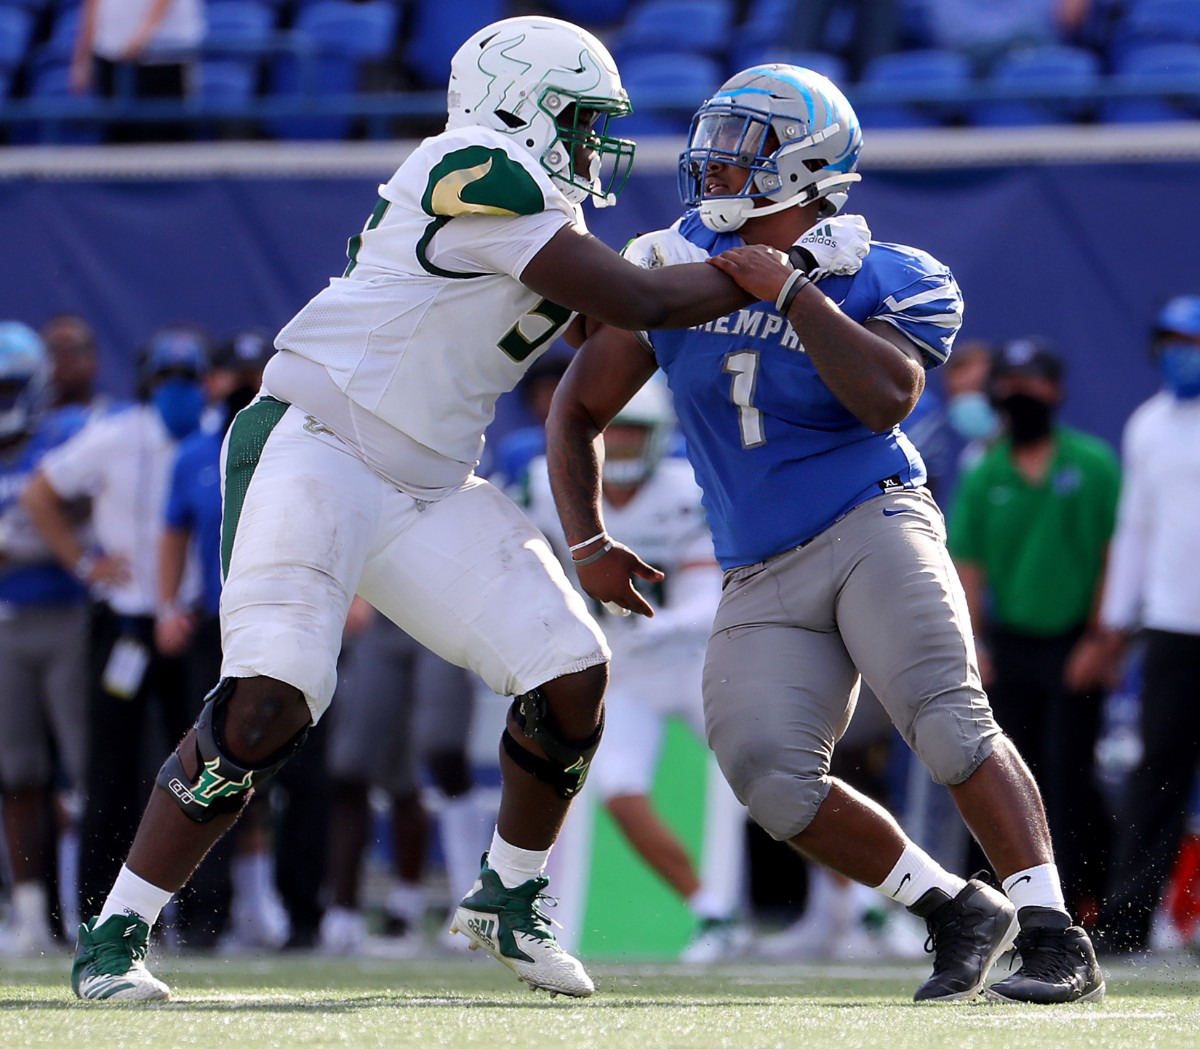 <strong>University of Memphis defensive lineman O'Bryan Goodson (1) tries to slip by a University of South Florida defender during a Nov. 7, 2020 home game at the Liberty Bowl Memorial Stadium against the University of South Florida.</strong> (Patrick Lantrip/Daily Memphian)